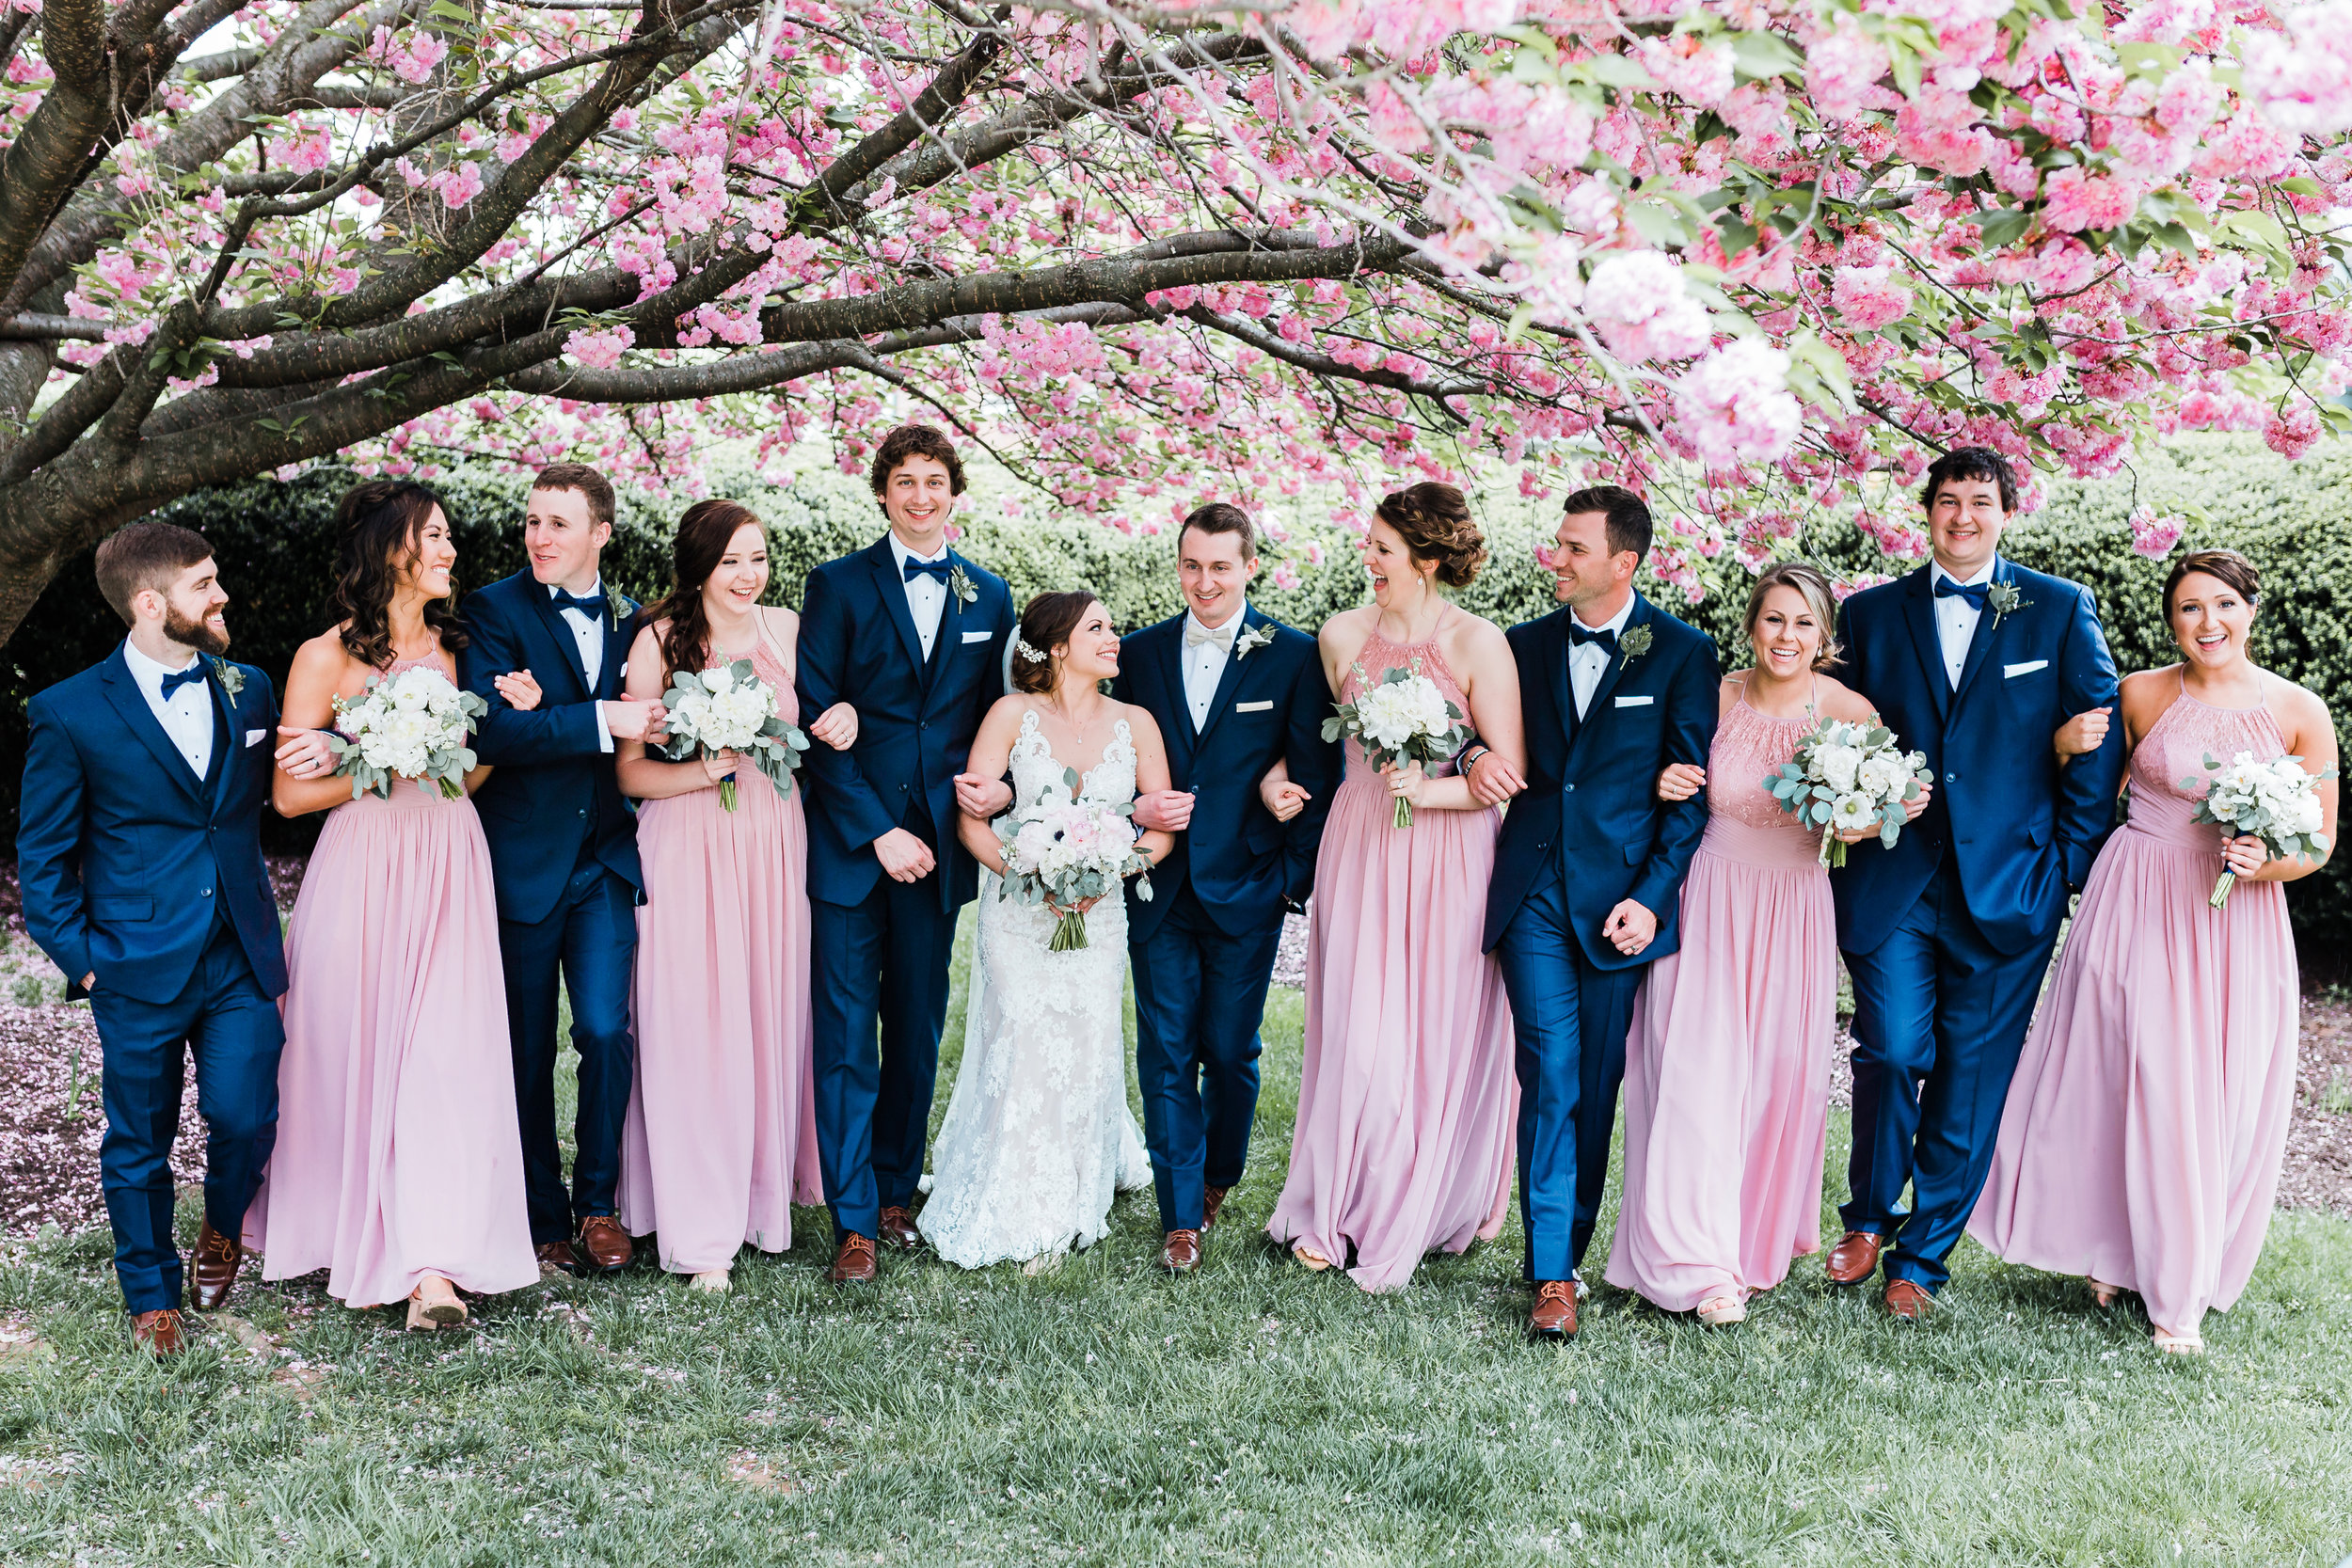 bridal party laughing together in carroll county md